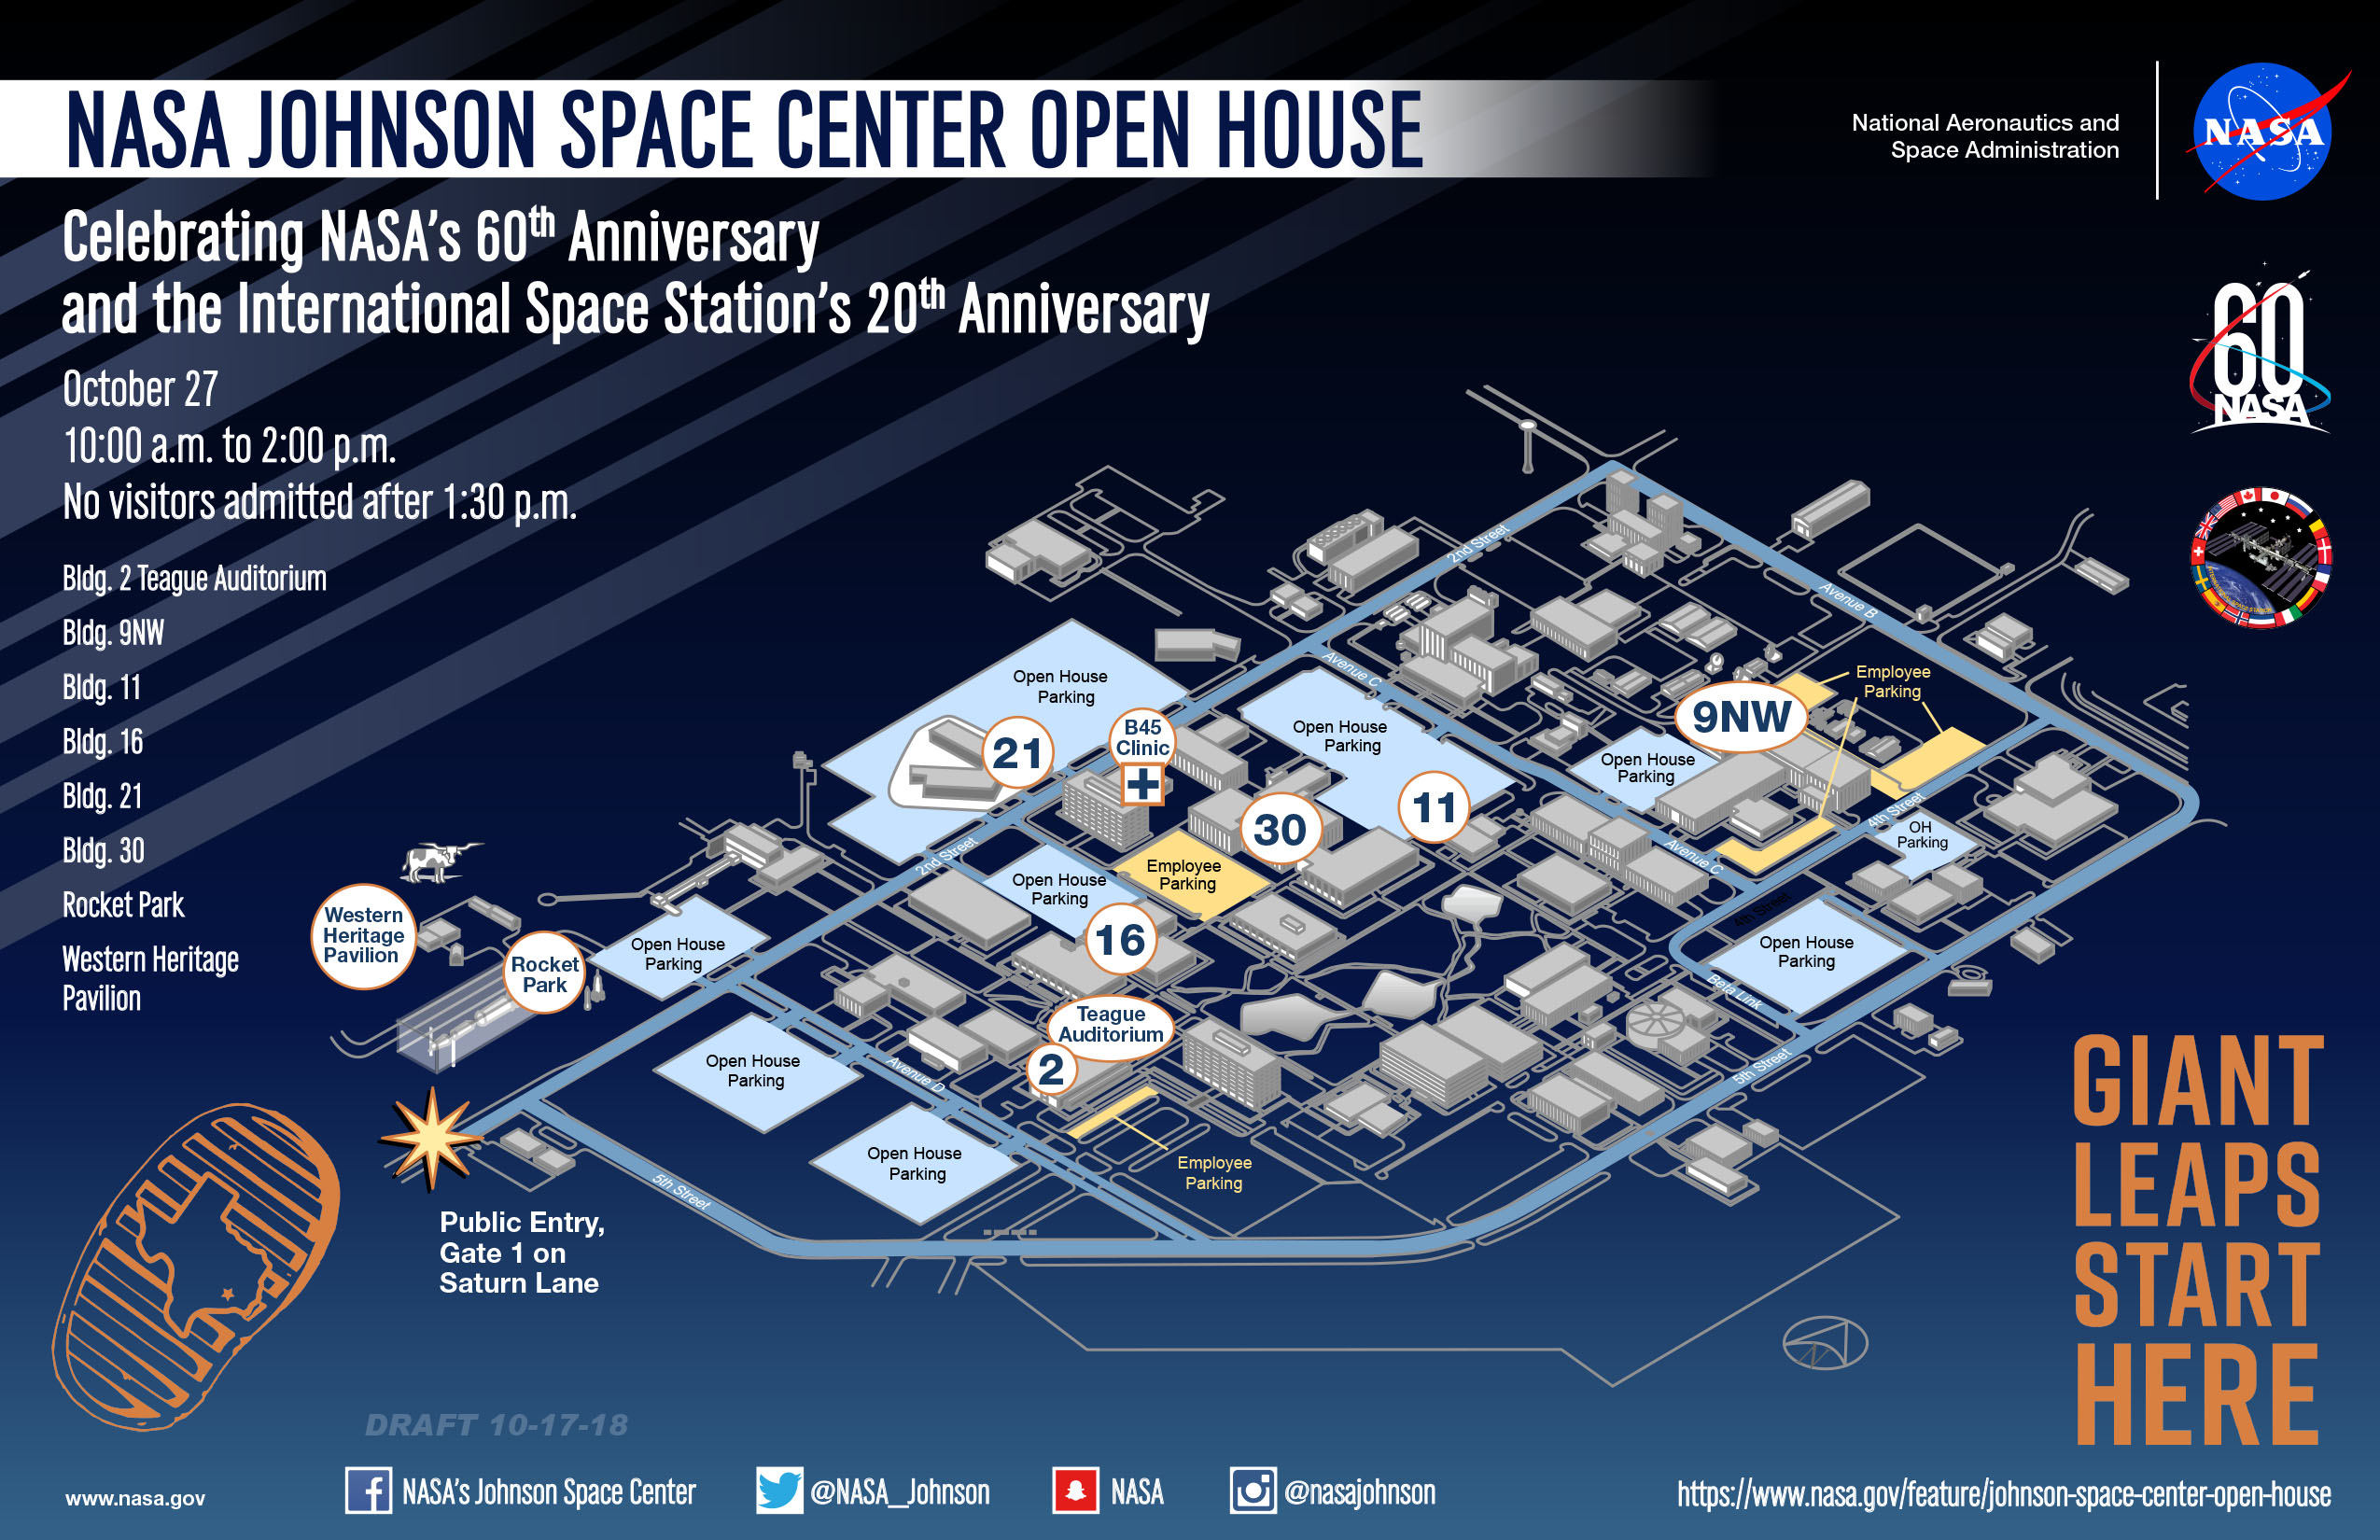 NASA to Welcome Visitors to Johnson Space Center Open House 2018